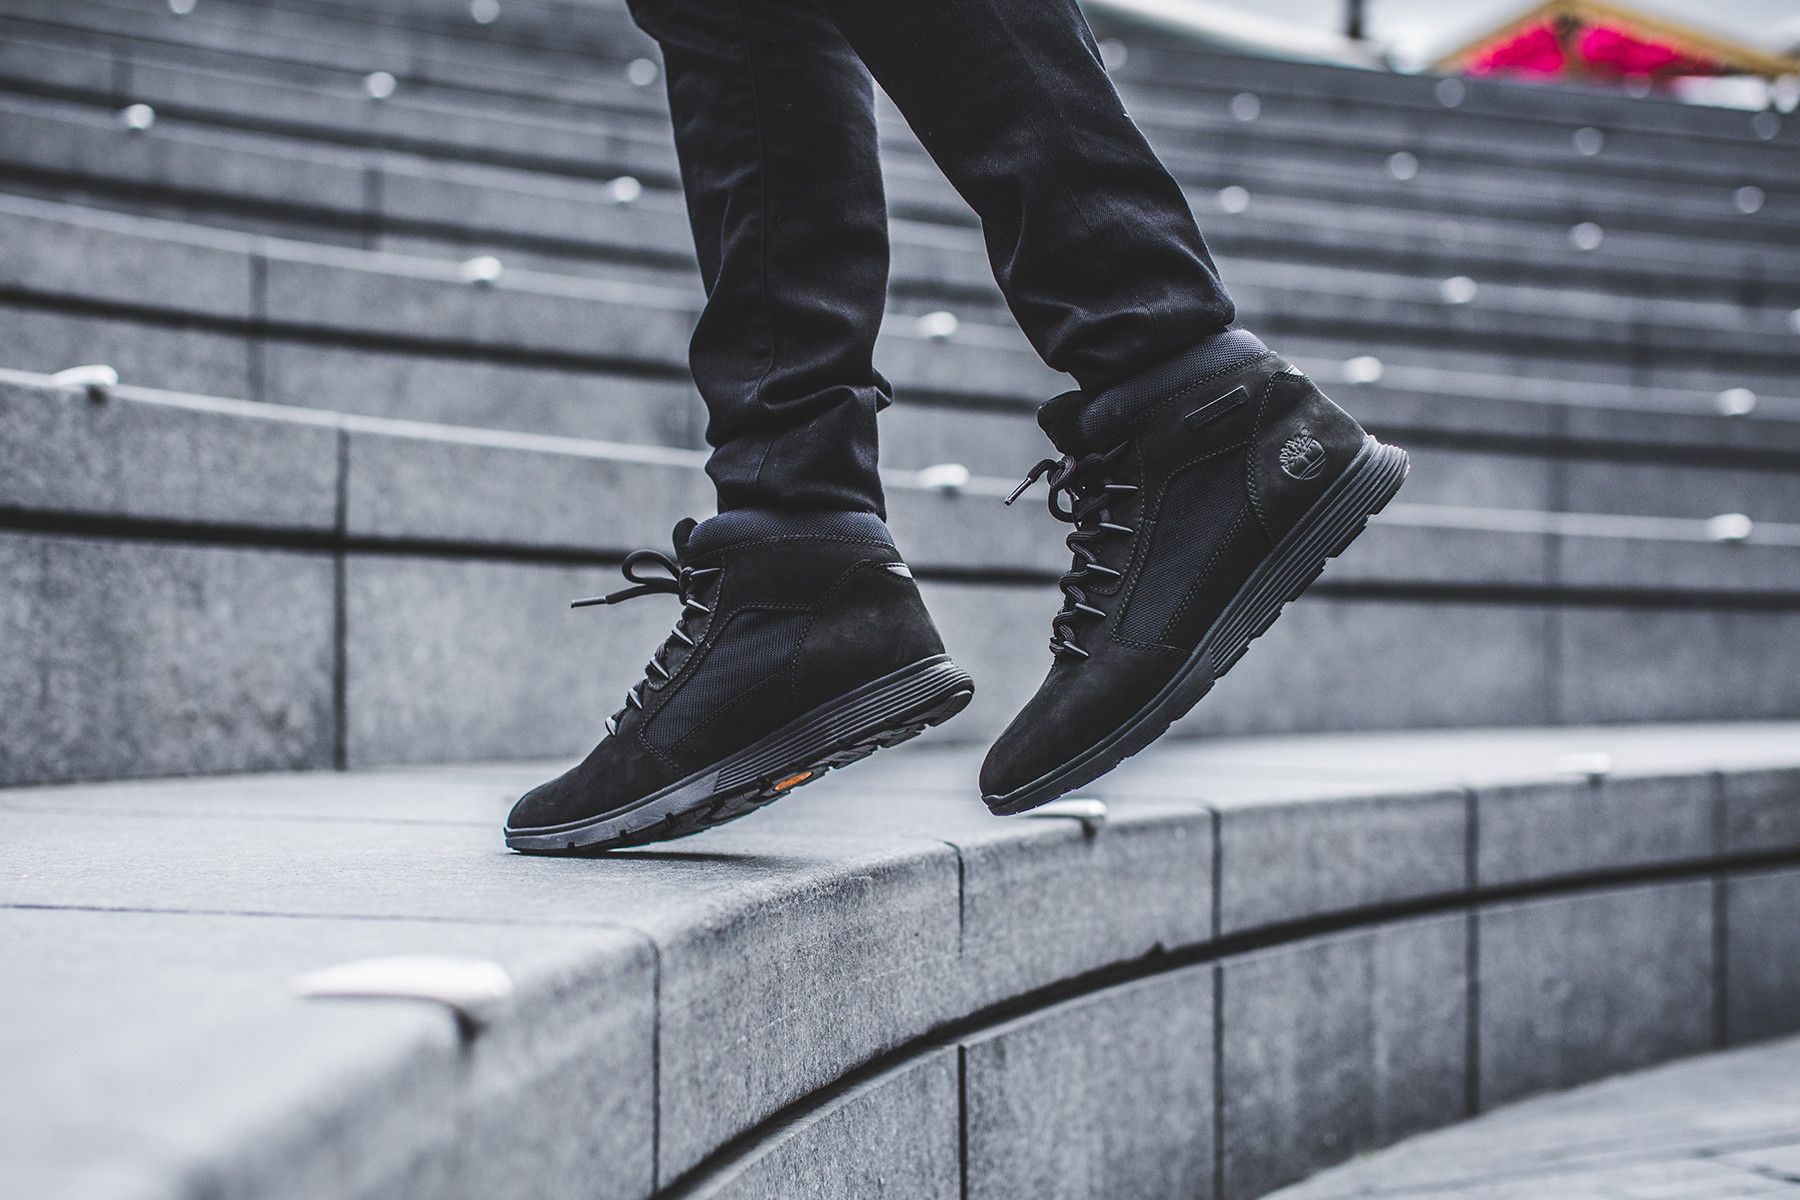 Timberland Boot-Sneaker Hybrid the